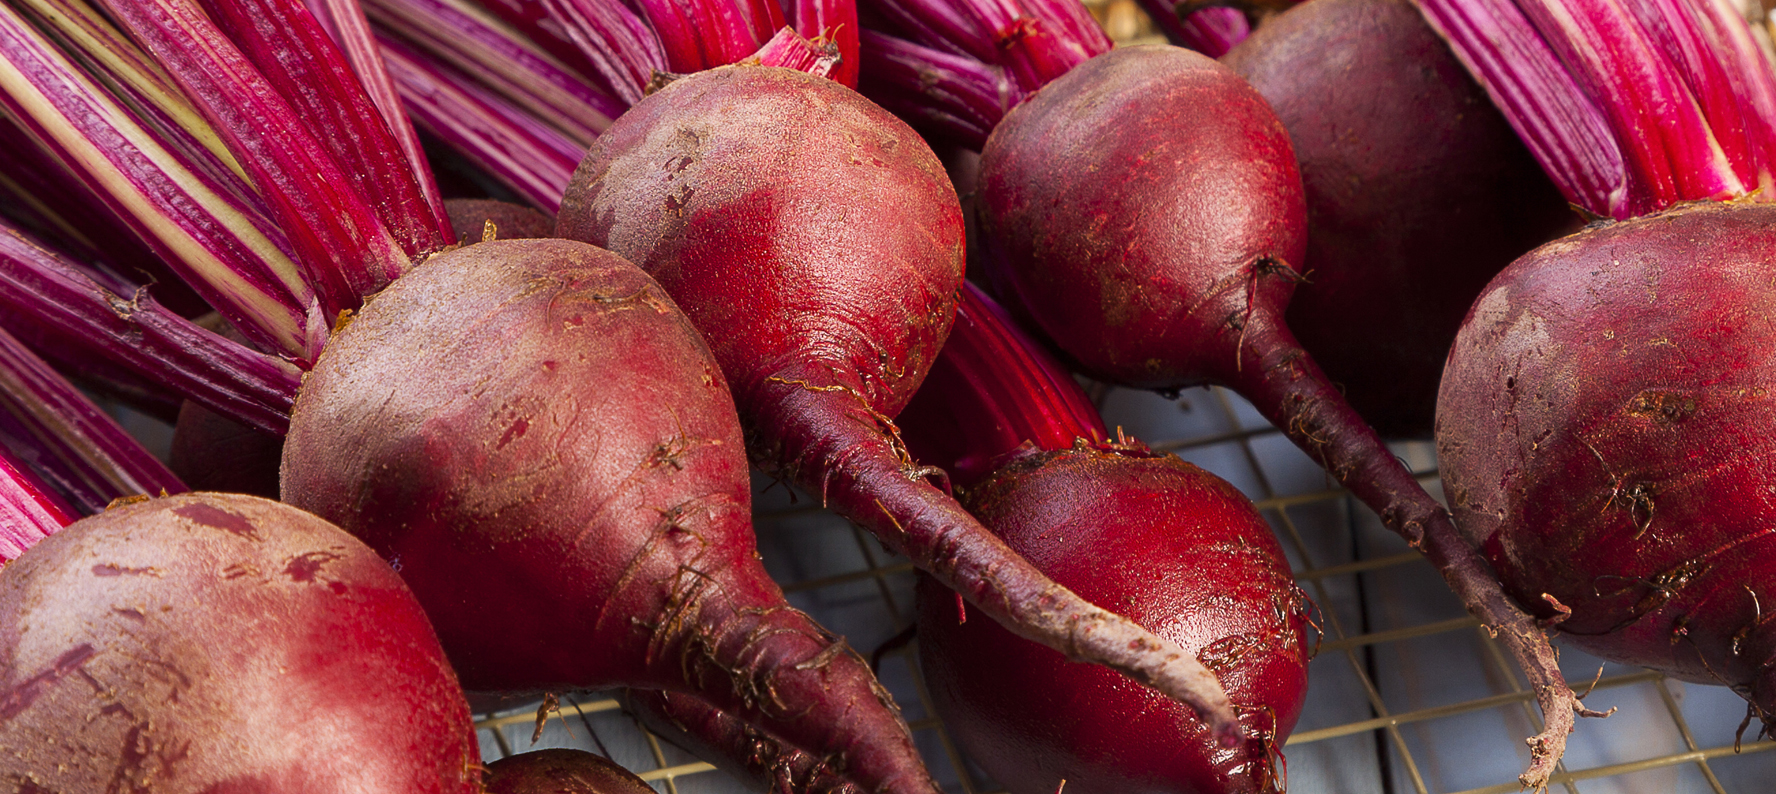 Betaine is used in natural skin care products for its moisturizing and Anti-inflammatory properties.